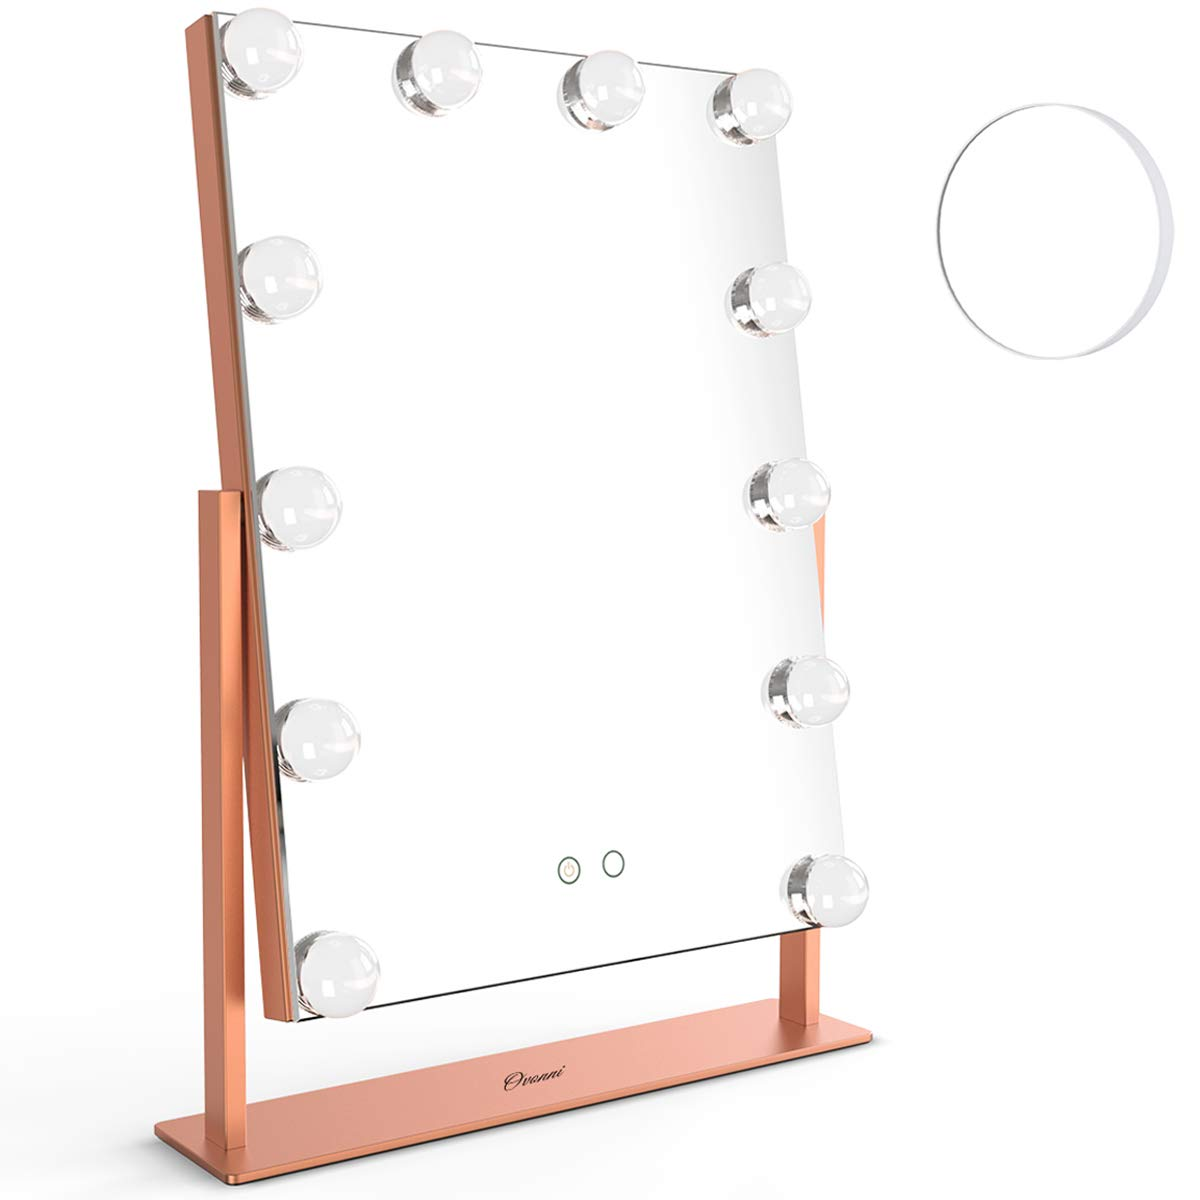 Ovonni Lighted Vanity Hollywood Makeup Mirror, Dimmable 360°Rotating Double-sided Tabletop Cosmetic Mirror with 12 LED Bulbs, Two Color Light Touch Control Memory Mode and Plug Powered, Rose gold